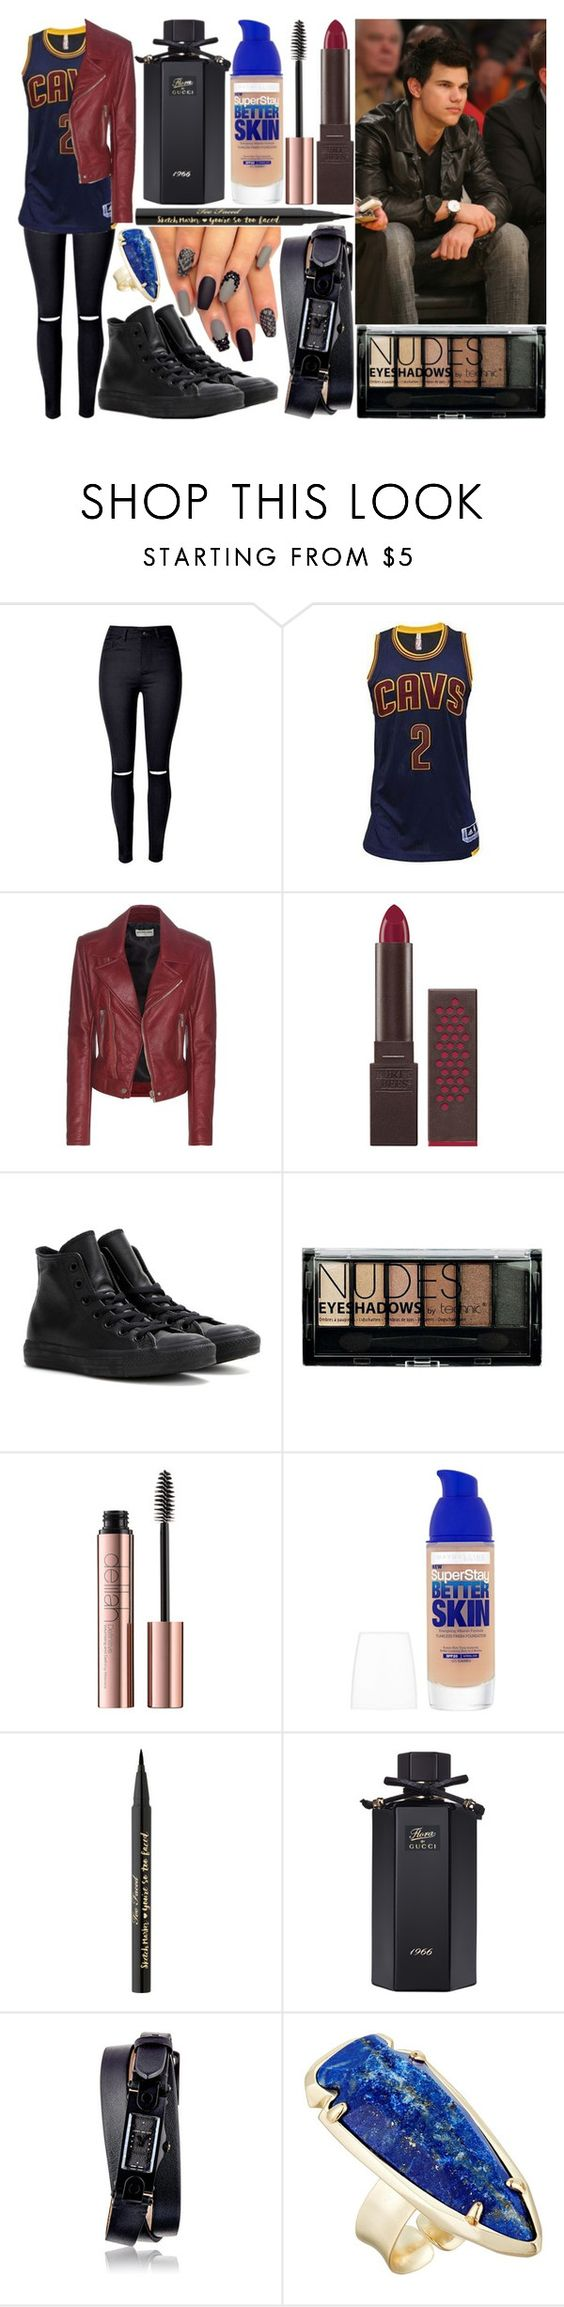 """""""cleveland cavaliers game w/ taylor lautner"""" by silent-killer ❤ liked on Polyvore featuring Balenciaga, Burt's Bees, Converse, Boohoo, Maybelline, Too Faced Cosmetics, Gucci, Givenchy and Kendra Scott"""